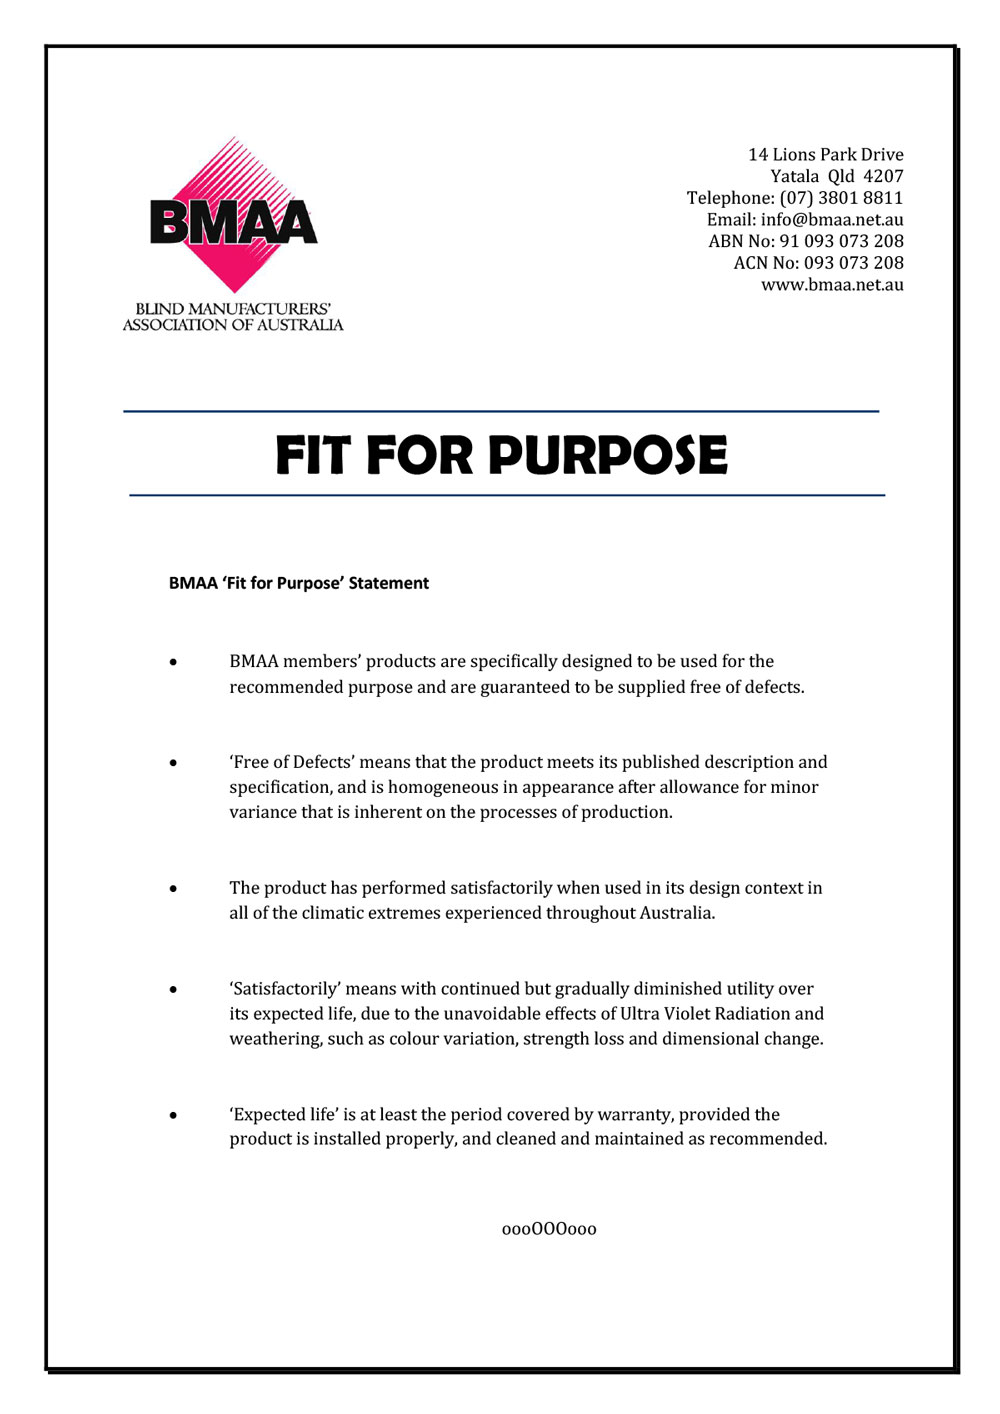 BMAA Guidelines - Fit for Purpose